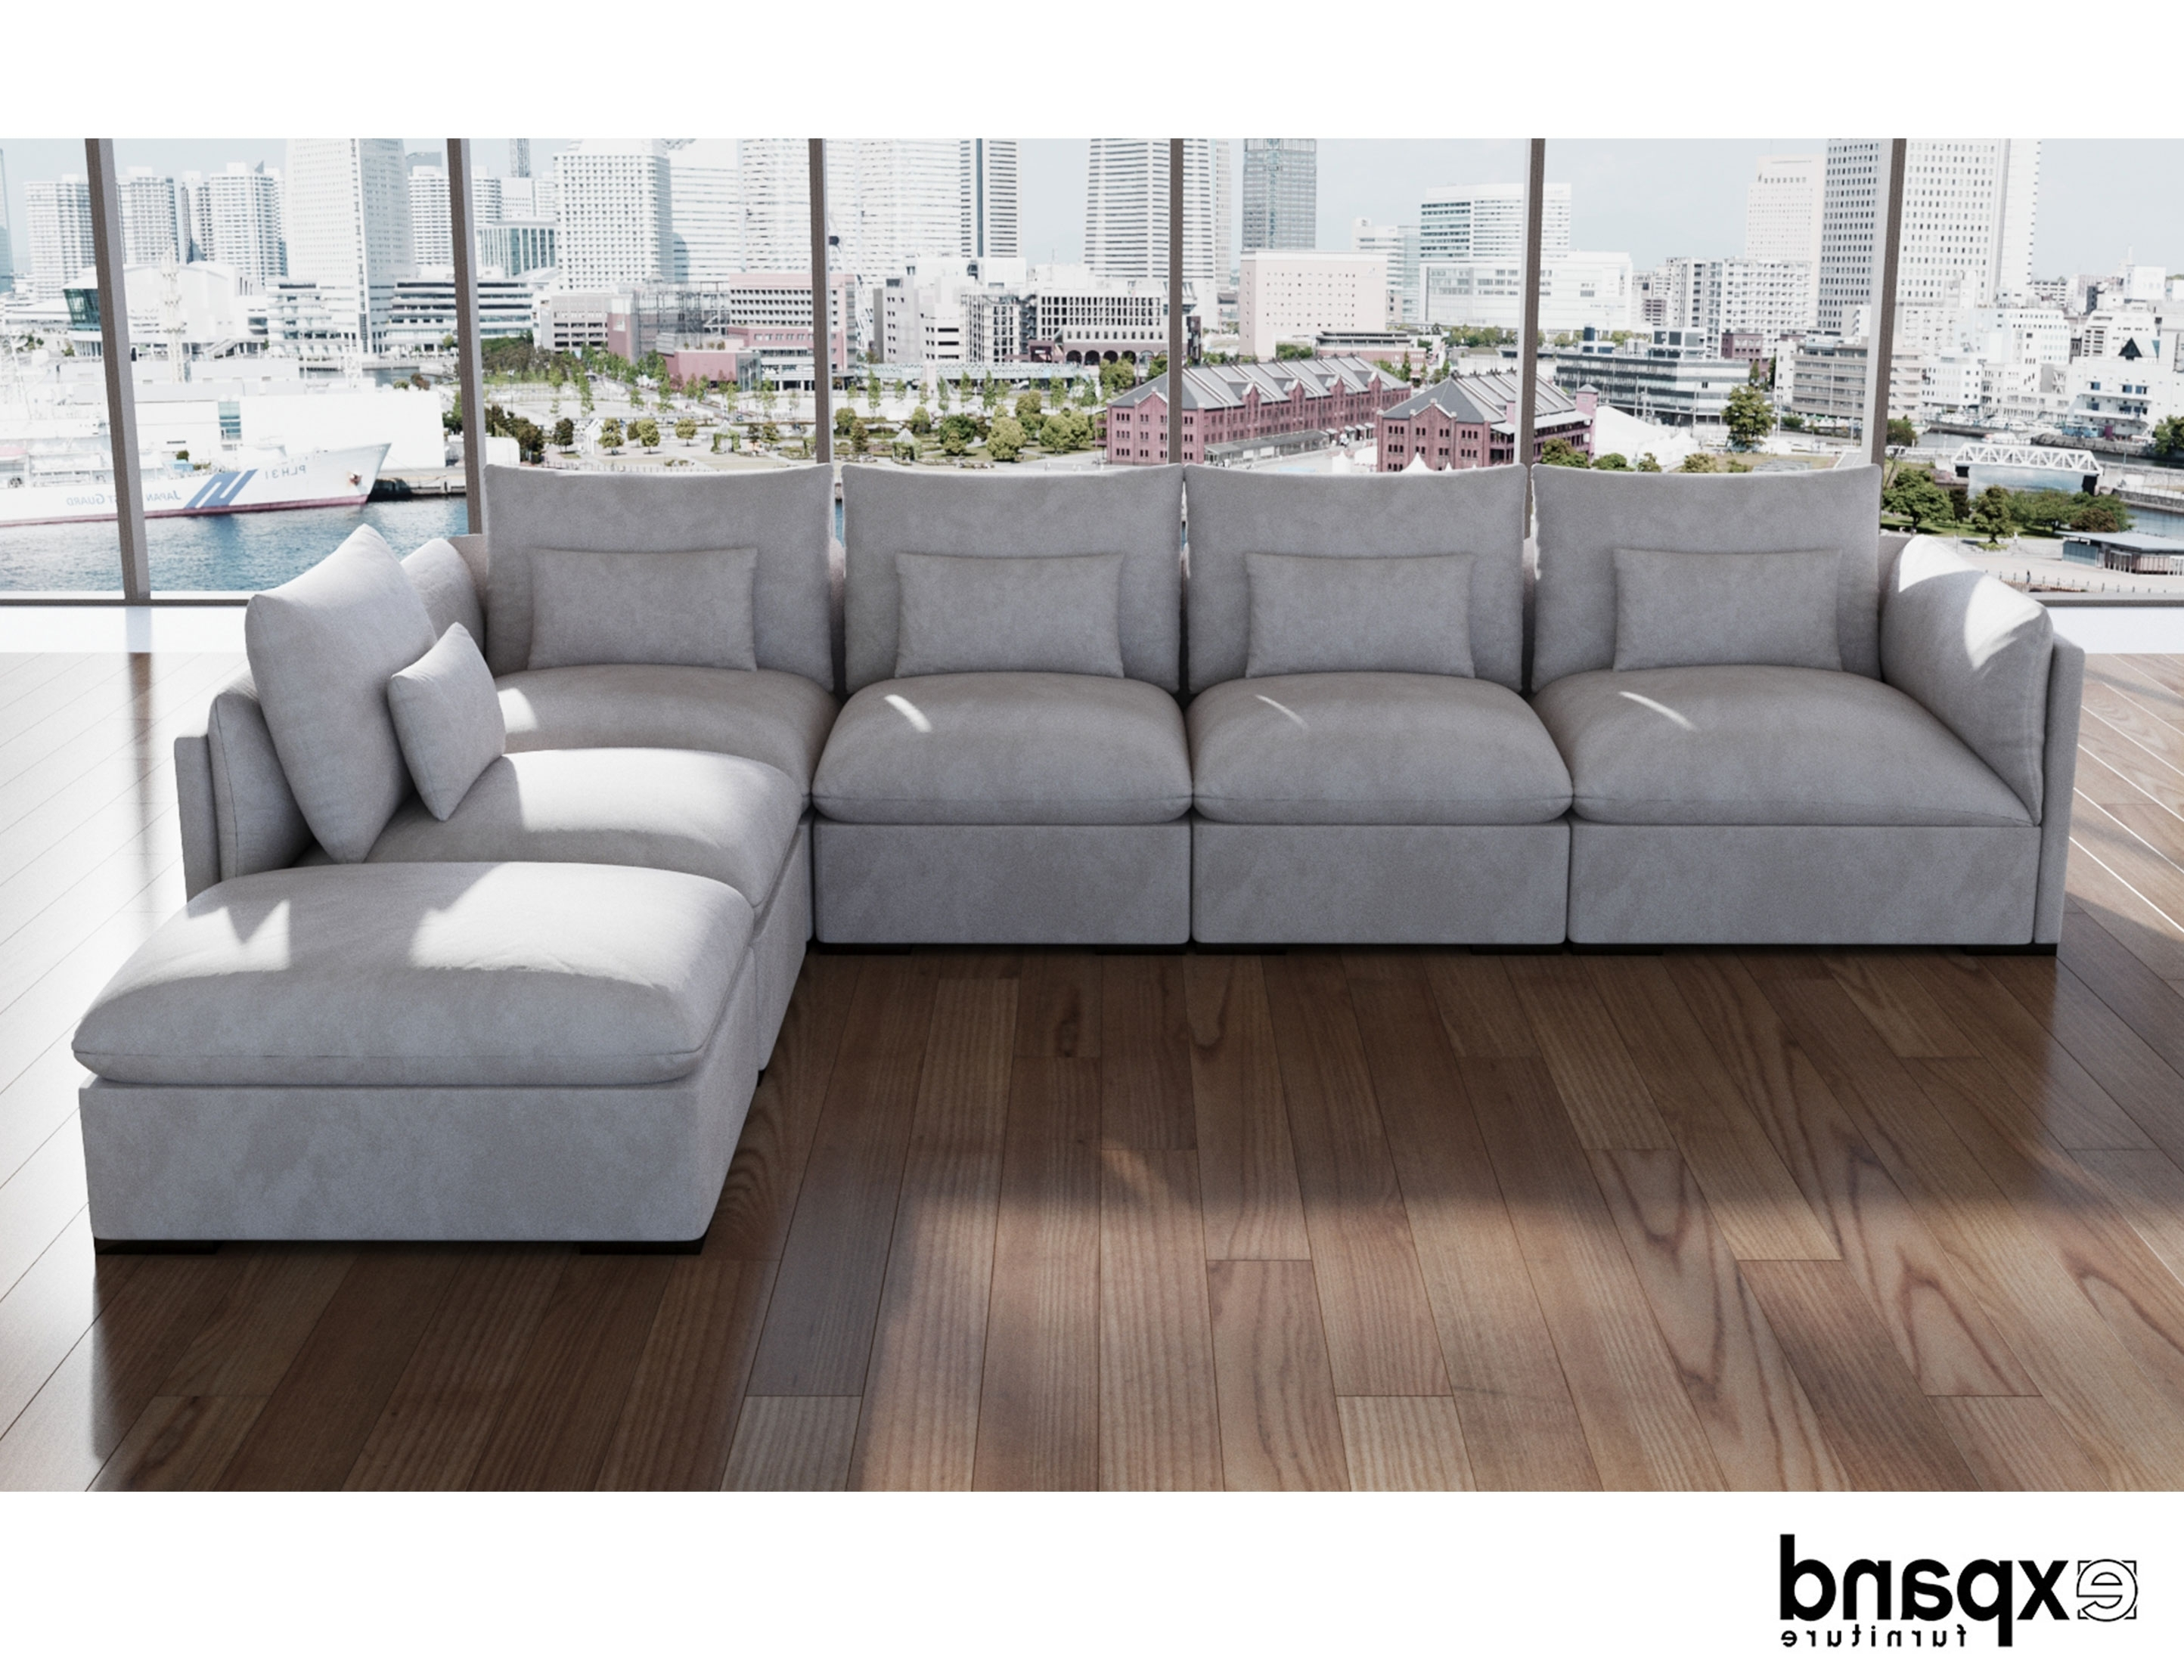 Down Feather Sectional Sofas Intended For Favorite Adagio: Luxury Sectional Modular Sofa Set Of 4 (Gallery 6 of 20)